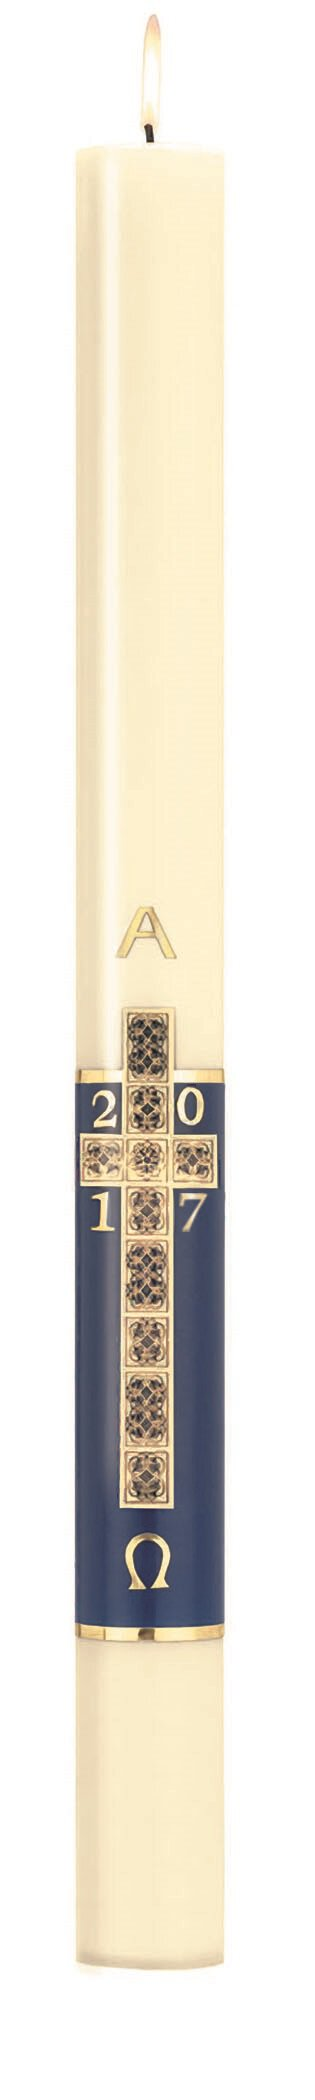 No 6 Special Holy Cross Paschal Candle